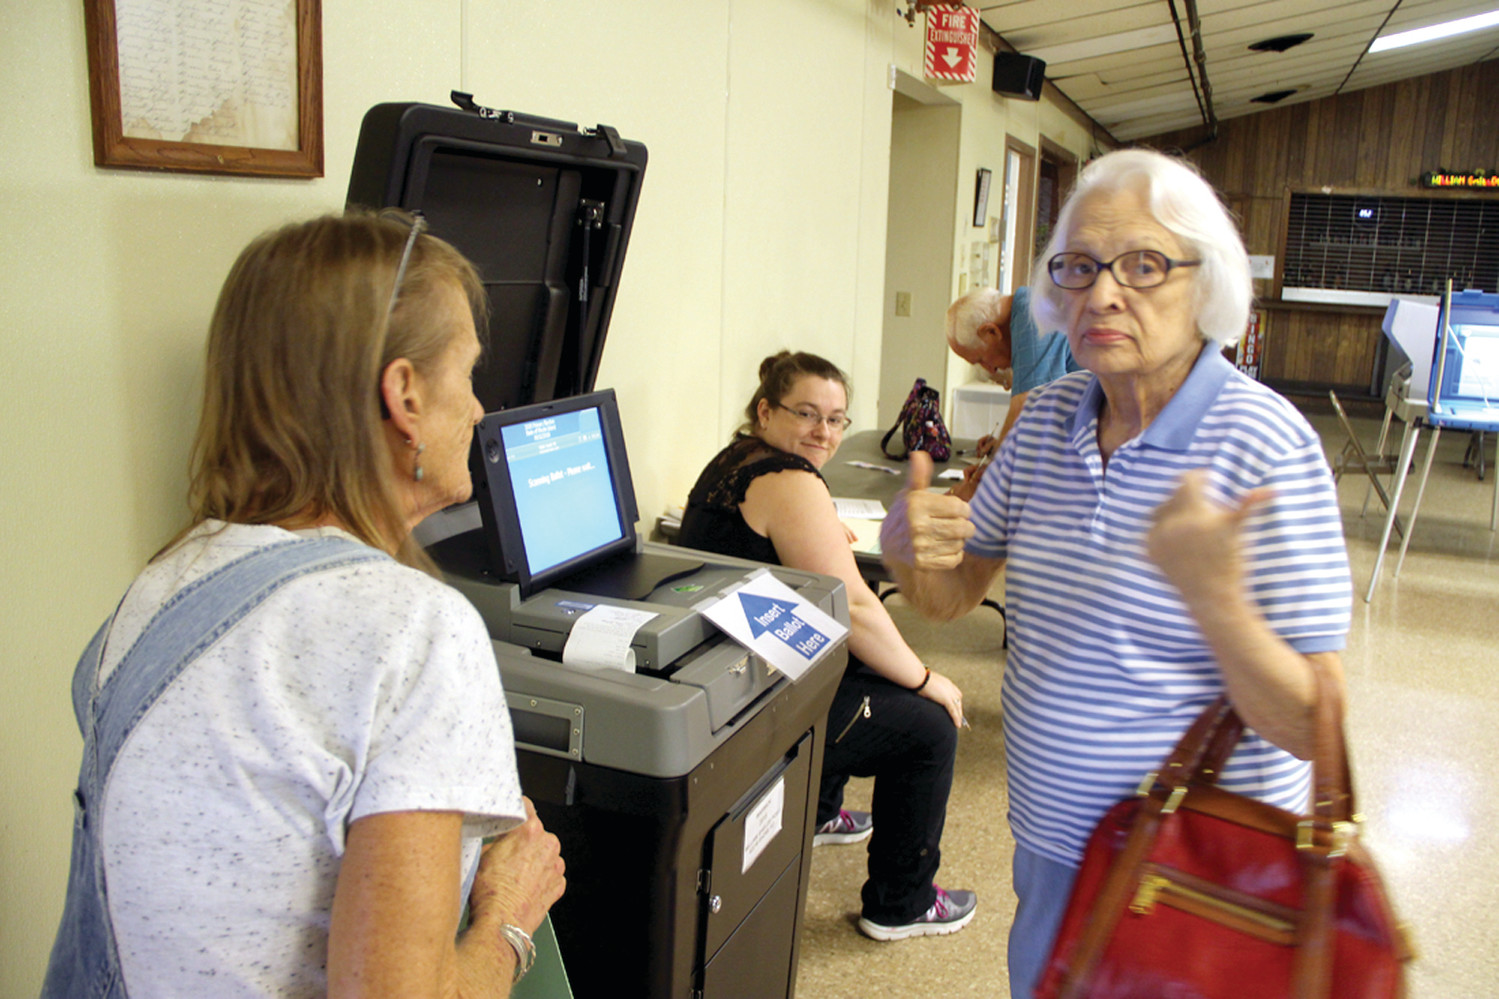 THUMBS UP: Ann Galloghy gives a thumbs up after casting her ballot at the William Shields Post poll Wednesday morning.